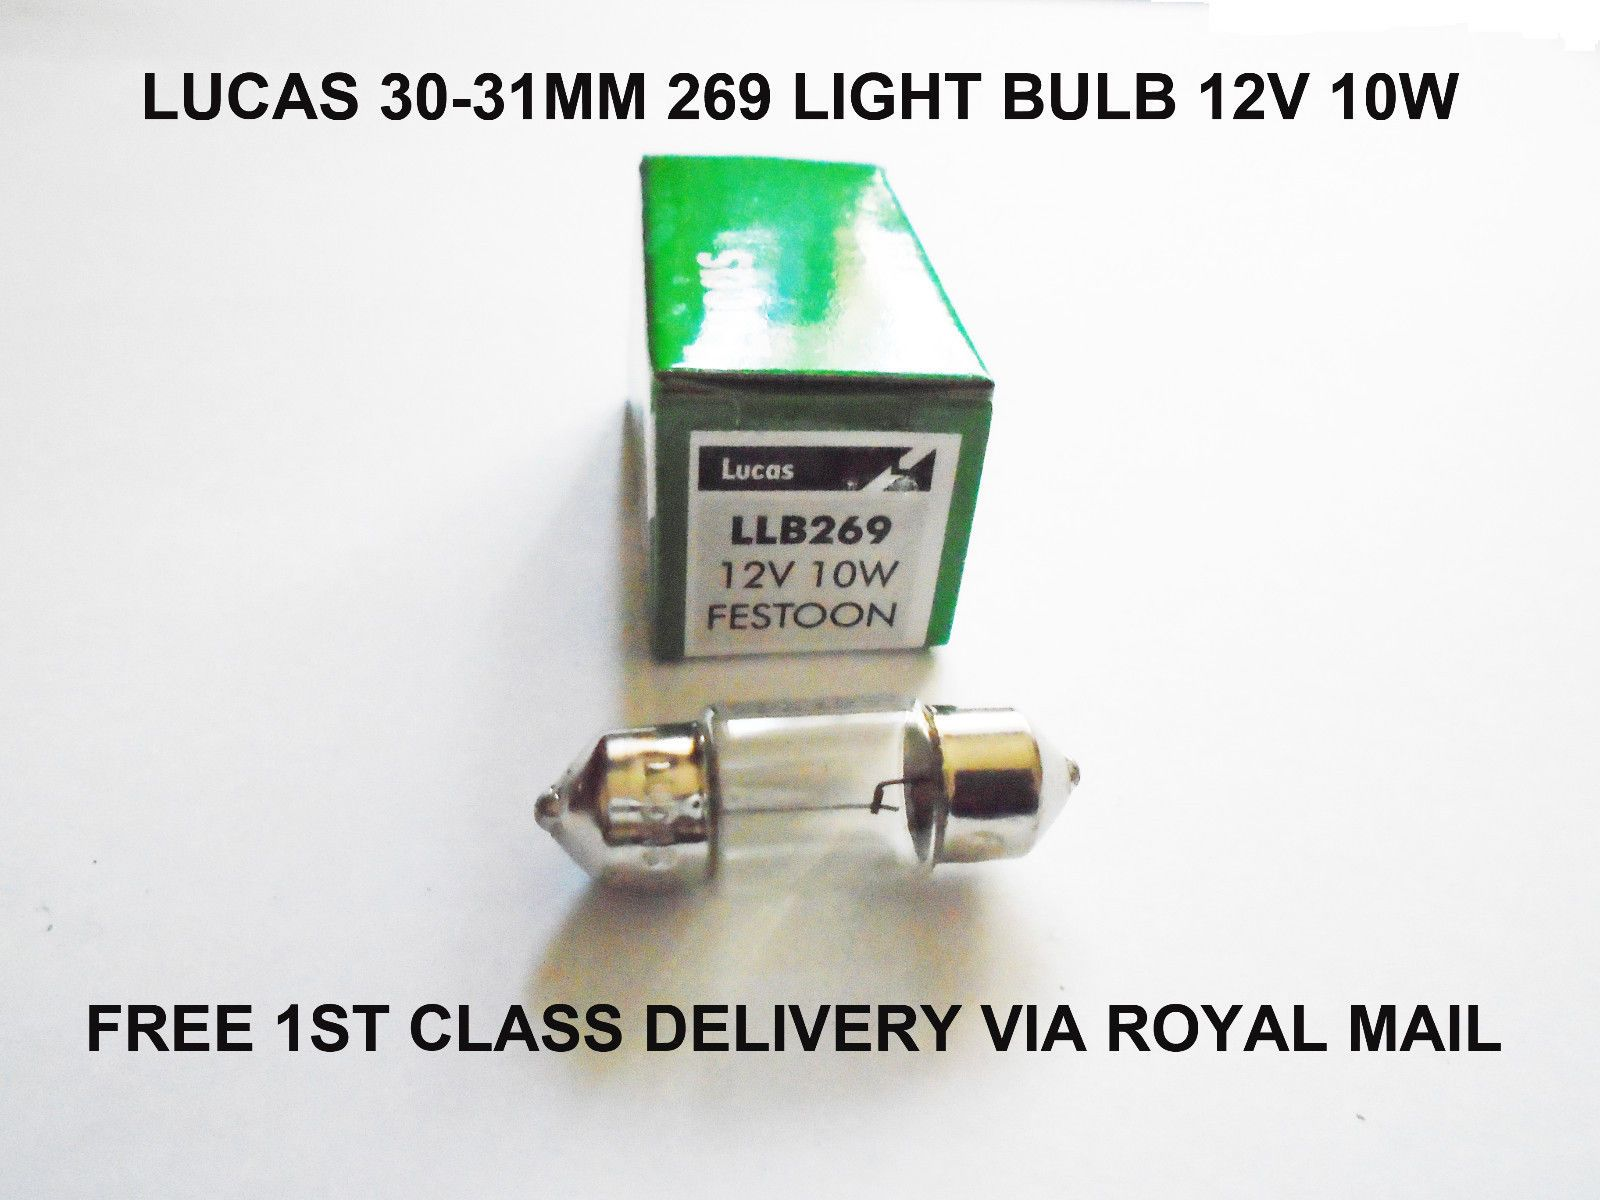 Details About 30mm Lucas 269 Car Festoon Number Plate Interior Sv8 5 Light Bulbs Lamp 12v 10w Light Bulb Lamp Bulb Number Plate